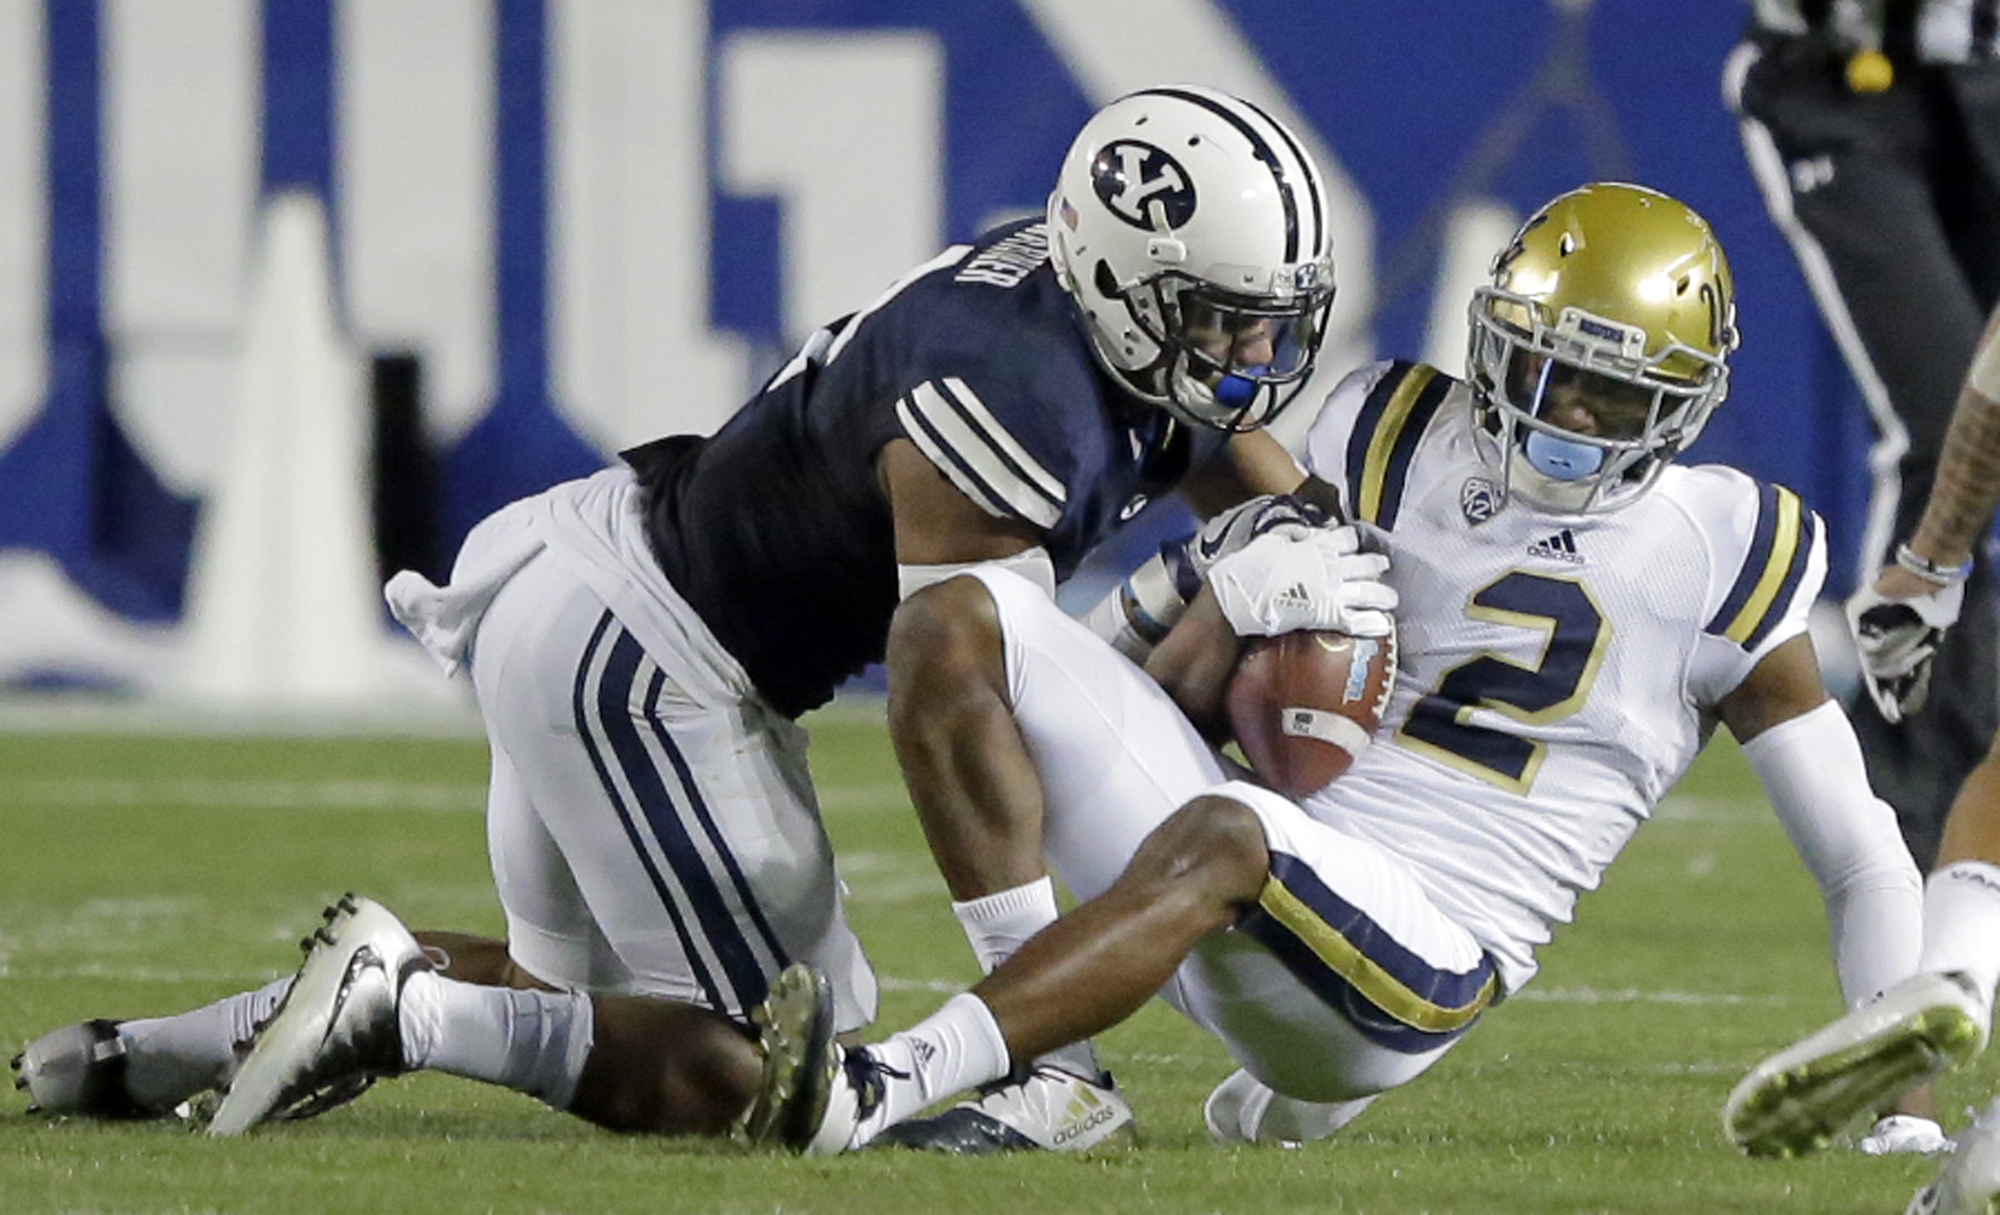 BYU linebacker Fred Warner, left, tackles UCLA wide receiver Jordan Lasley during the first half of an NCAA college football game Saturday, Sept. 17, 2016, in Provo, Utah. (AP Photo/Rick Bowmer)